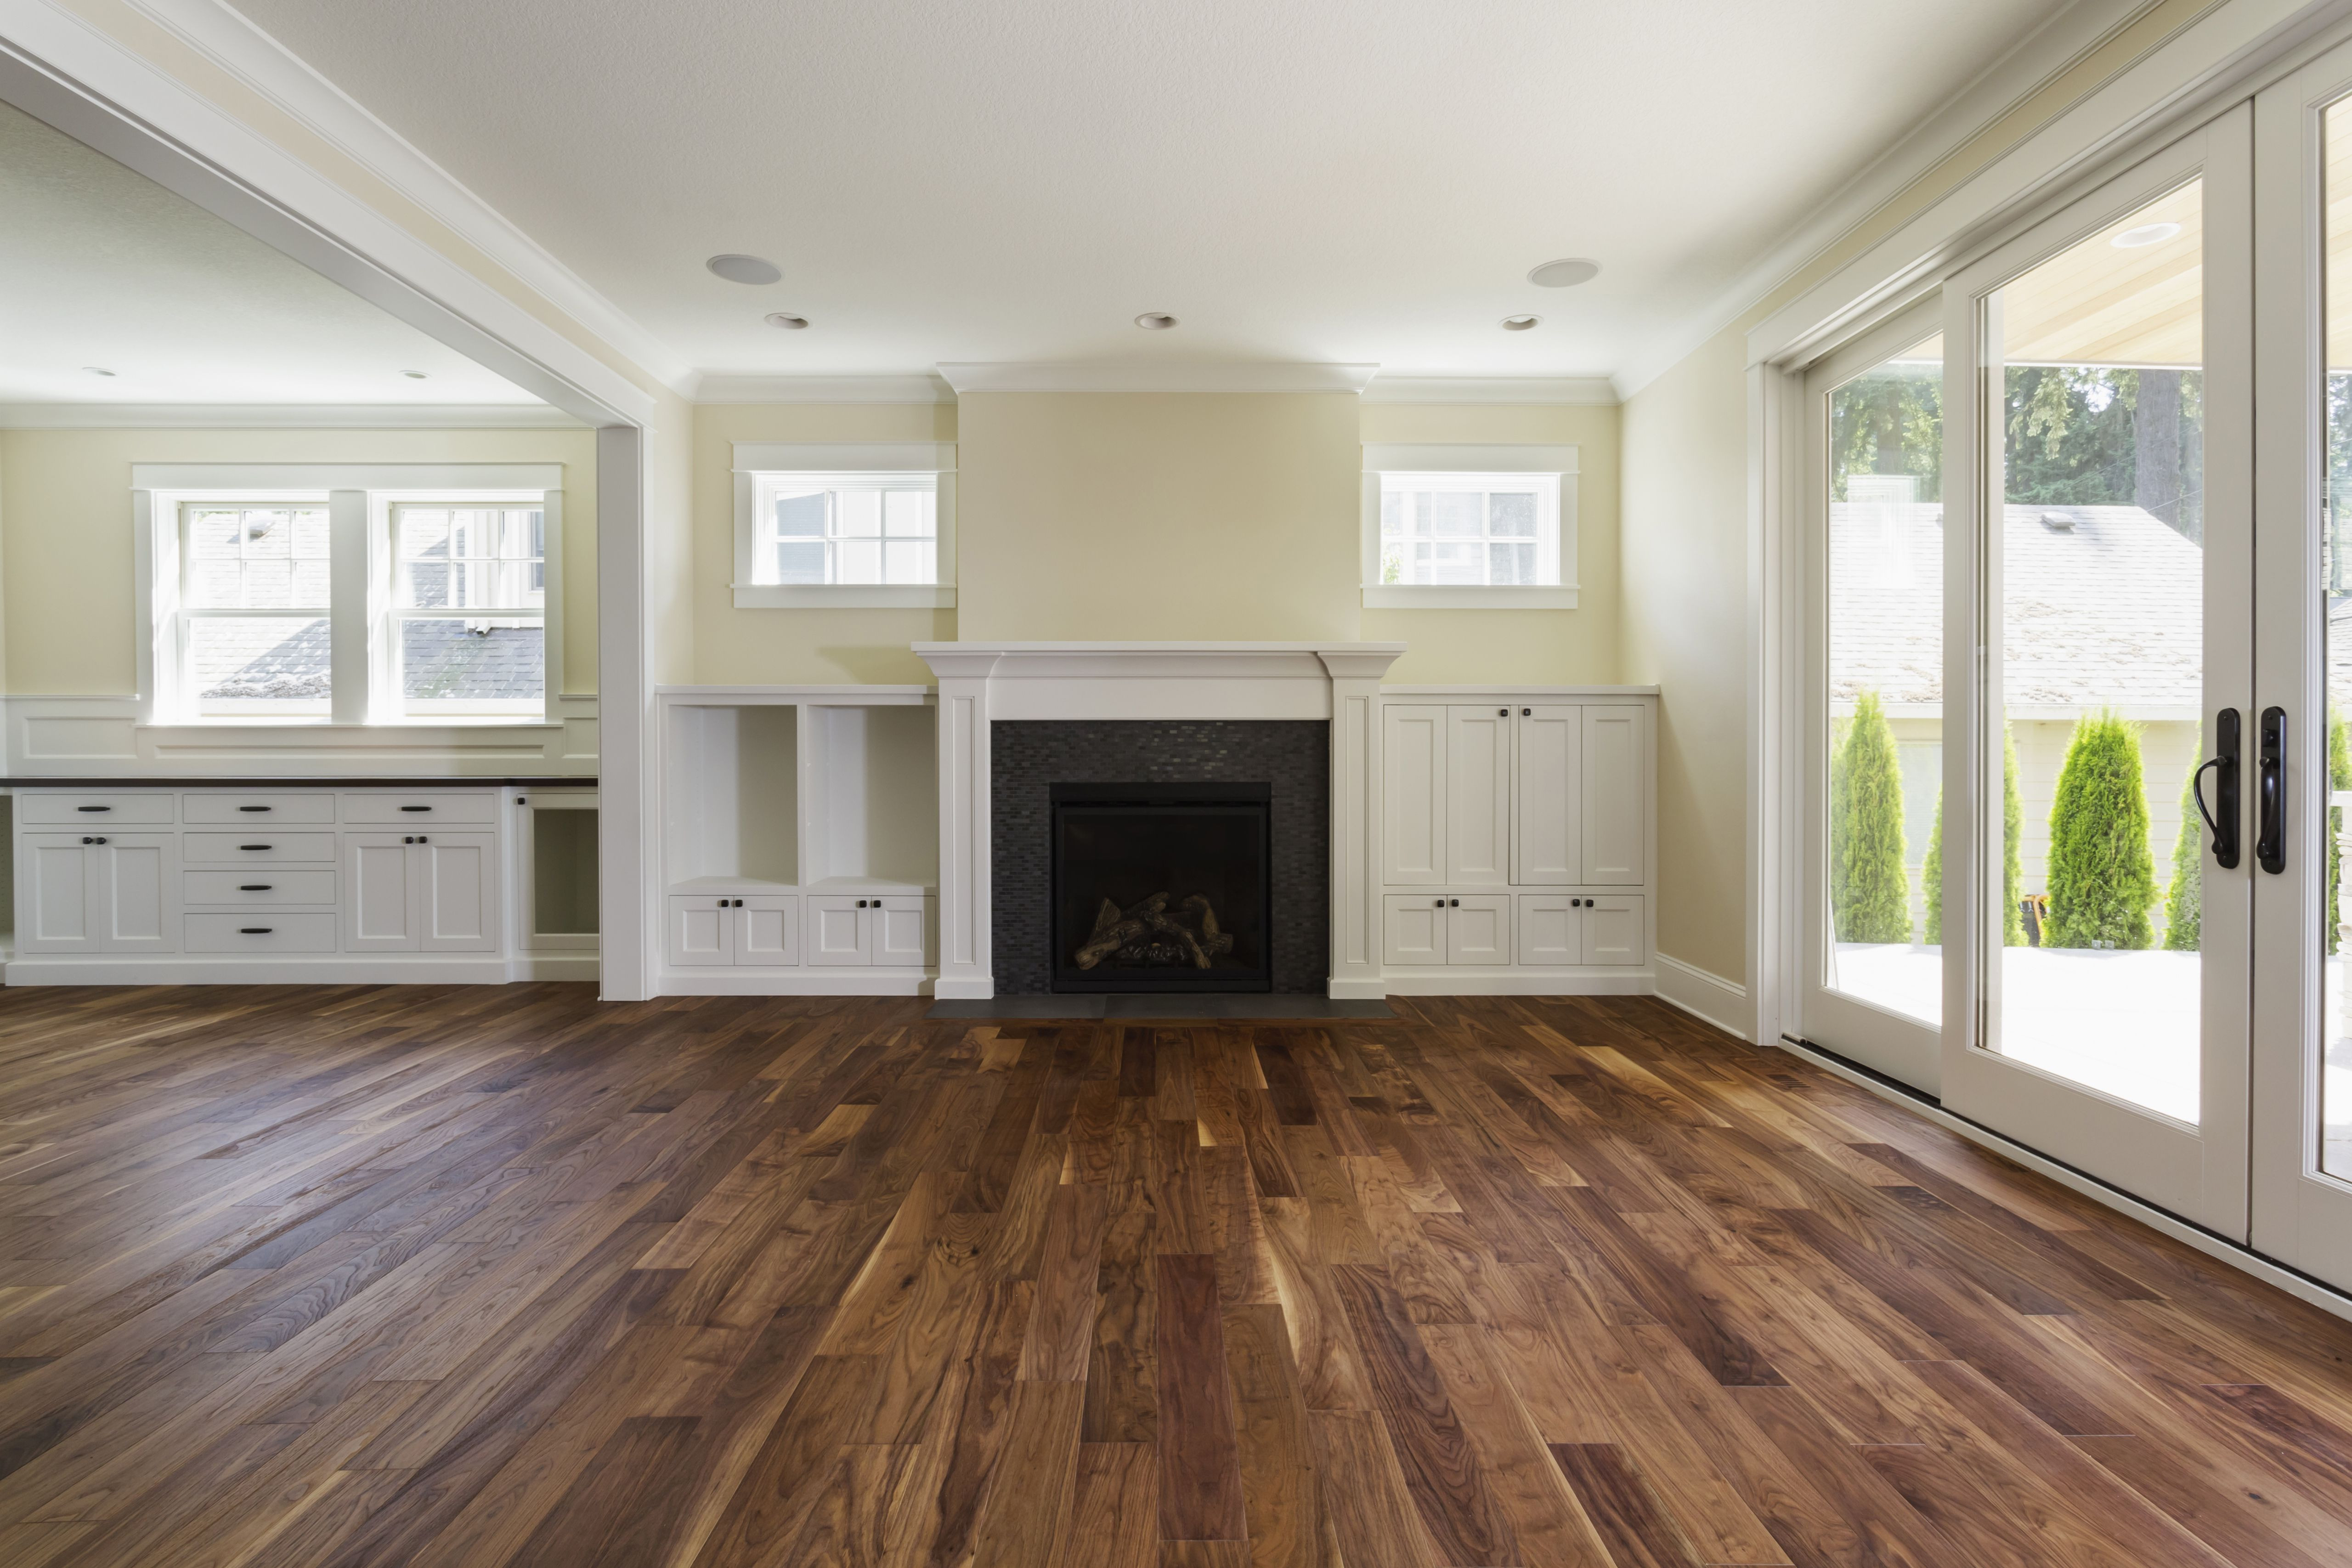 how to clean hardwood floors under carpet of the pros and cons of prefinished hardwood flooring intended for fireplace and built in shelves in living room 482143011 57bef8e33df78cc16e035397